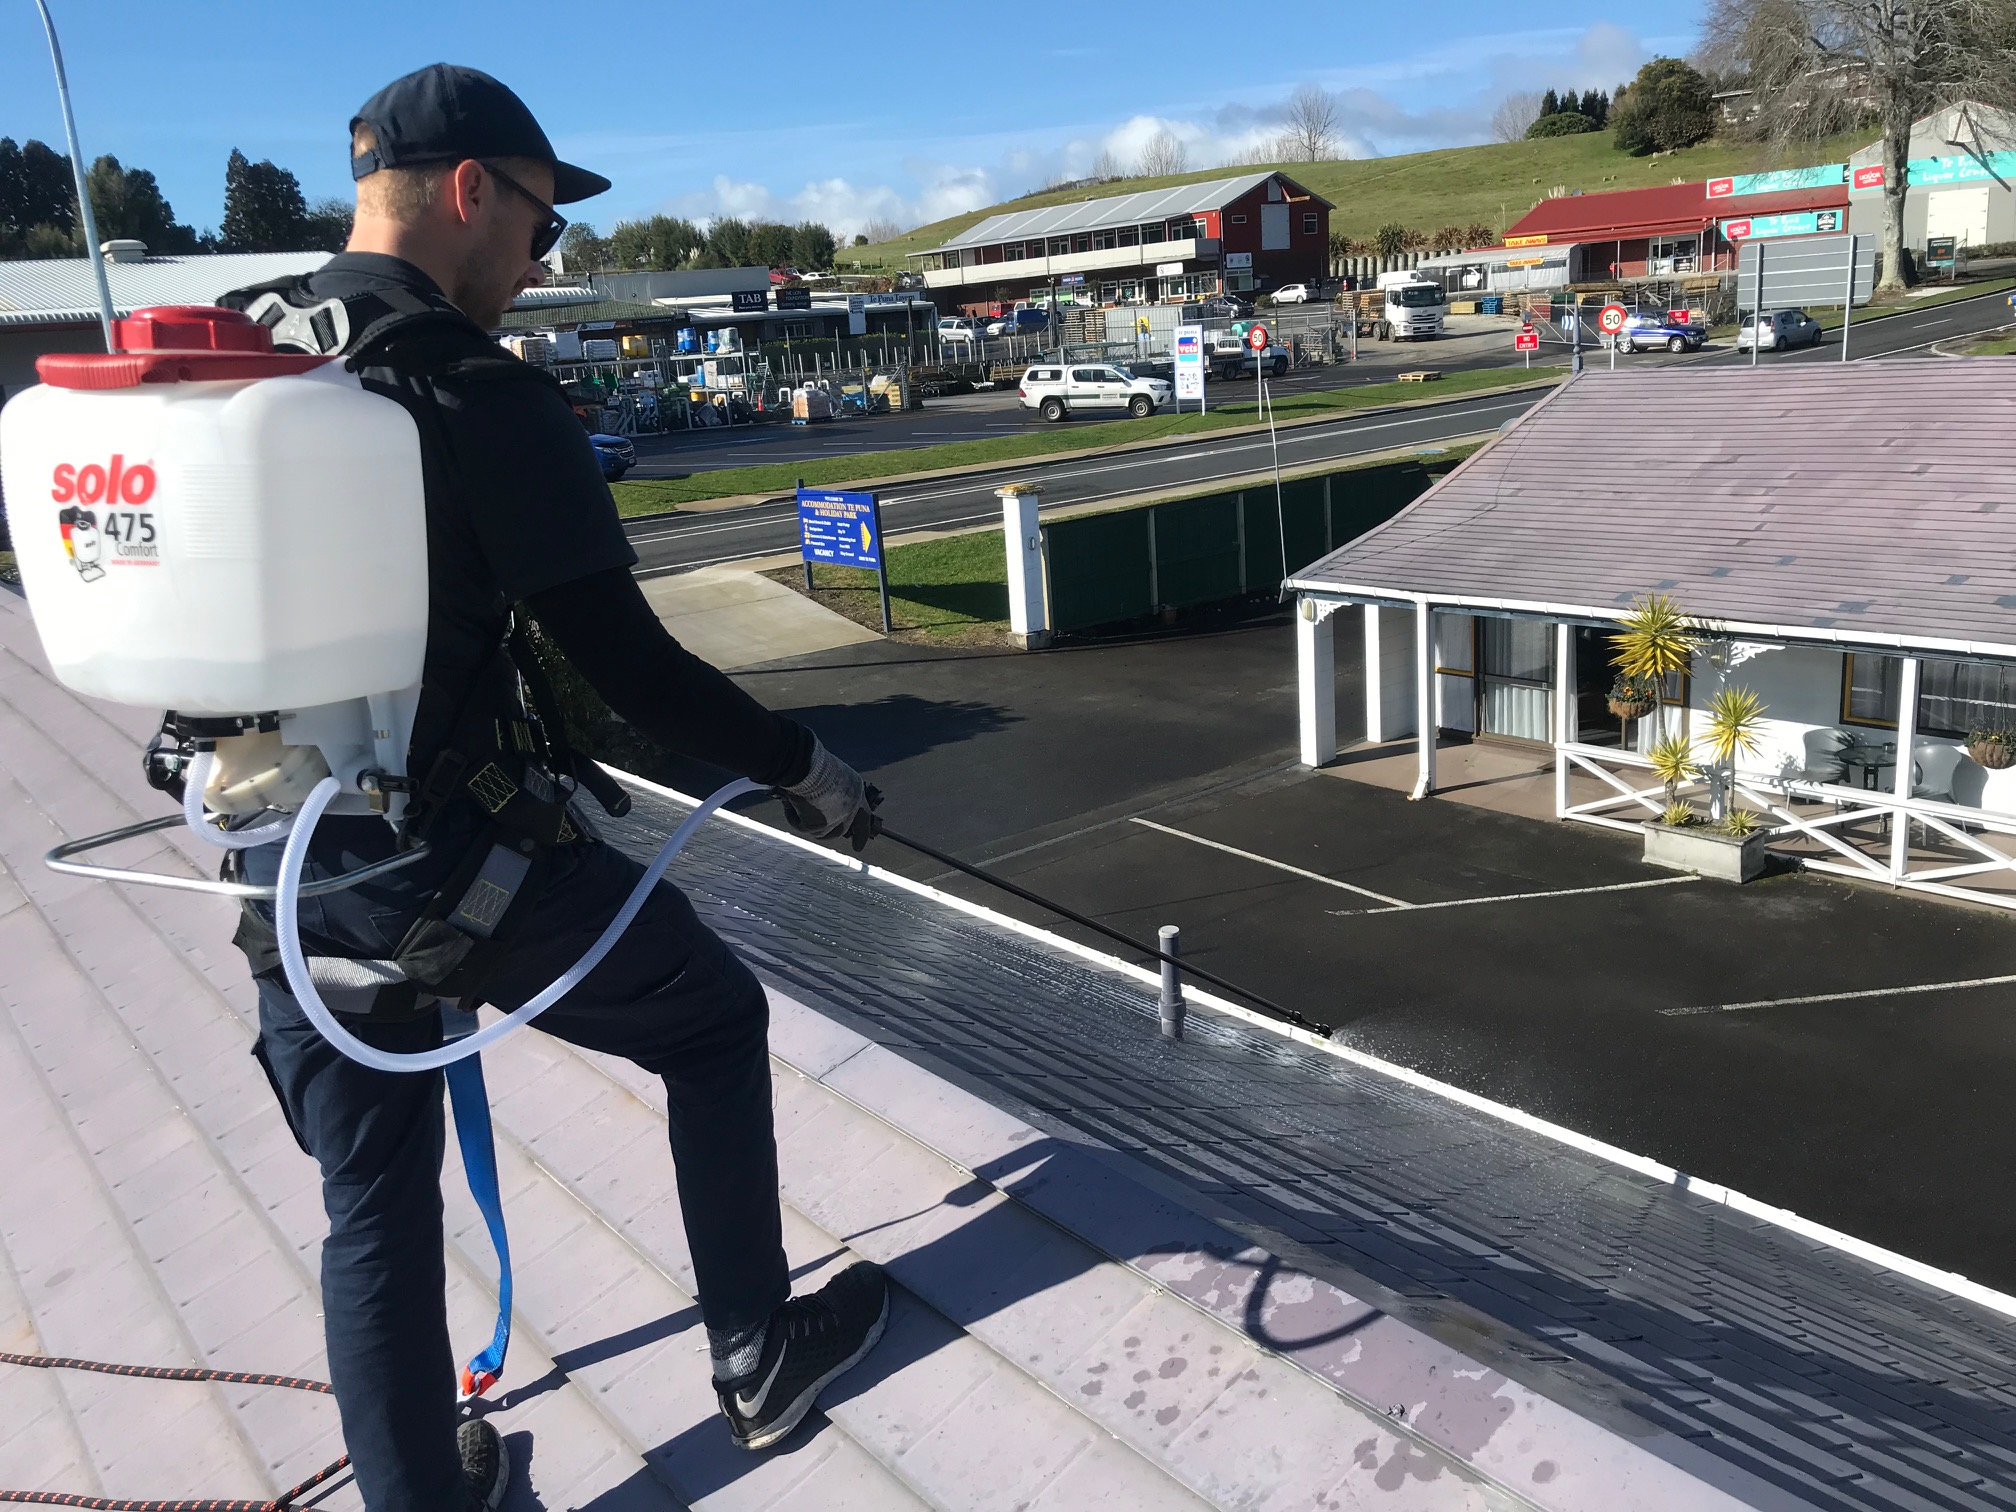 The Complete Moss & Mould Treatment - Within our extensive range of cleaning solutions, we offer comprehensive roof servicing for moss and mould treatment in Mount Maunganui and neighbouring suburbs. Our complete service utilises professional grade spraying techniques, which focus on eliminating moss and lichen, along with harmful spores, to prevent them from returning. Health and safety is important to us, so our products have been developed with the non-toxic active ingredient Benzalkonium chloride, which provides a safer alternative and biodegradable solution for outdoor cleaning services.